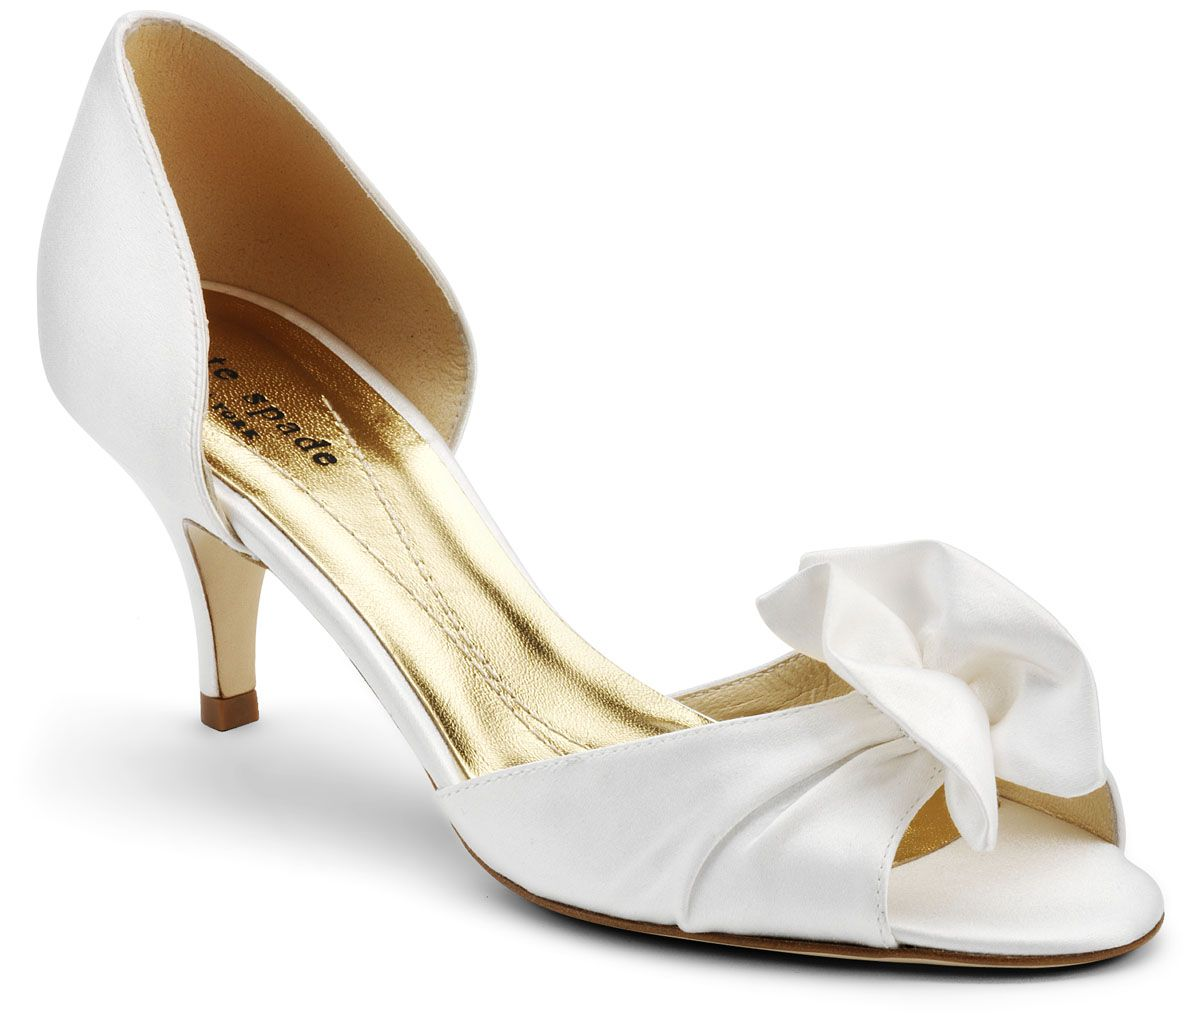 "White Kate Spade Evie Bridal Shoes $245.00 $295.00 ""This cute low ..."